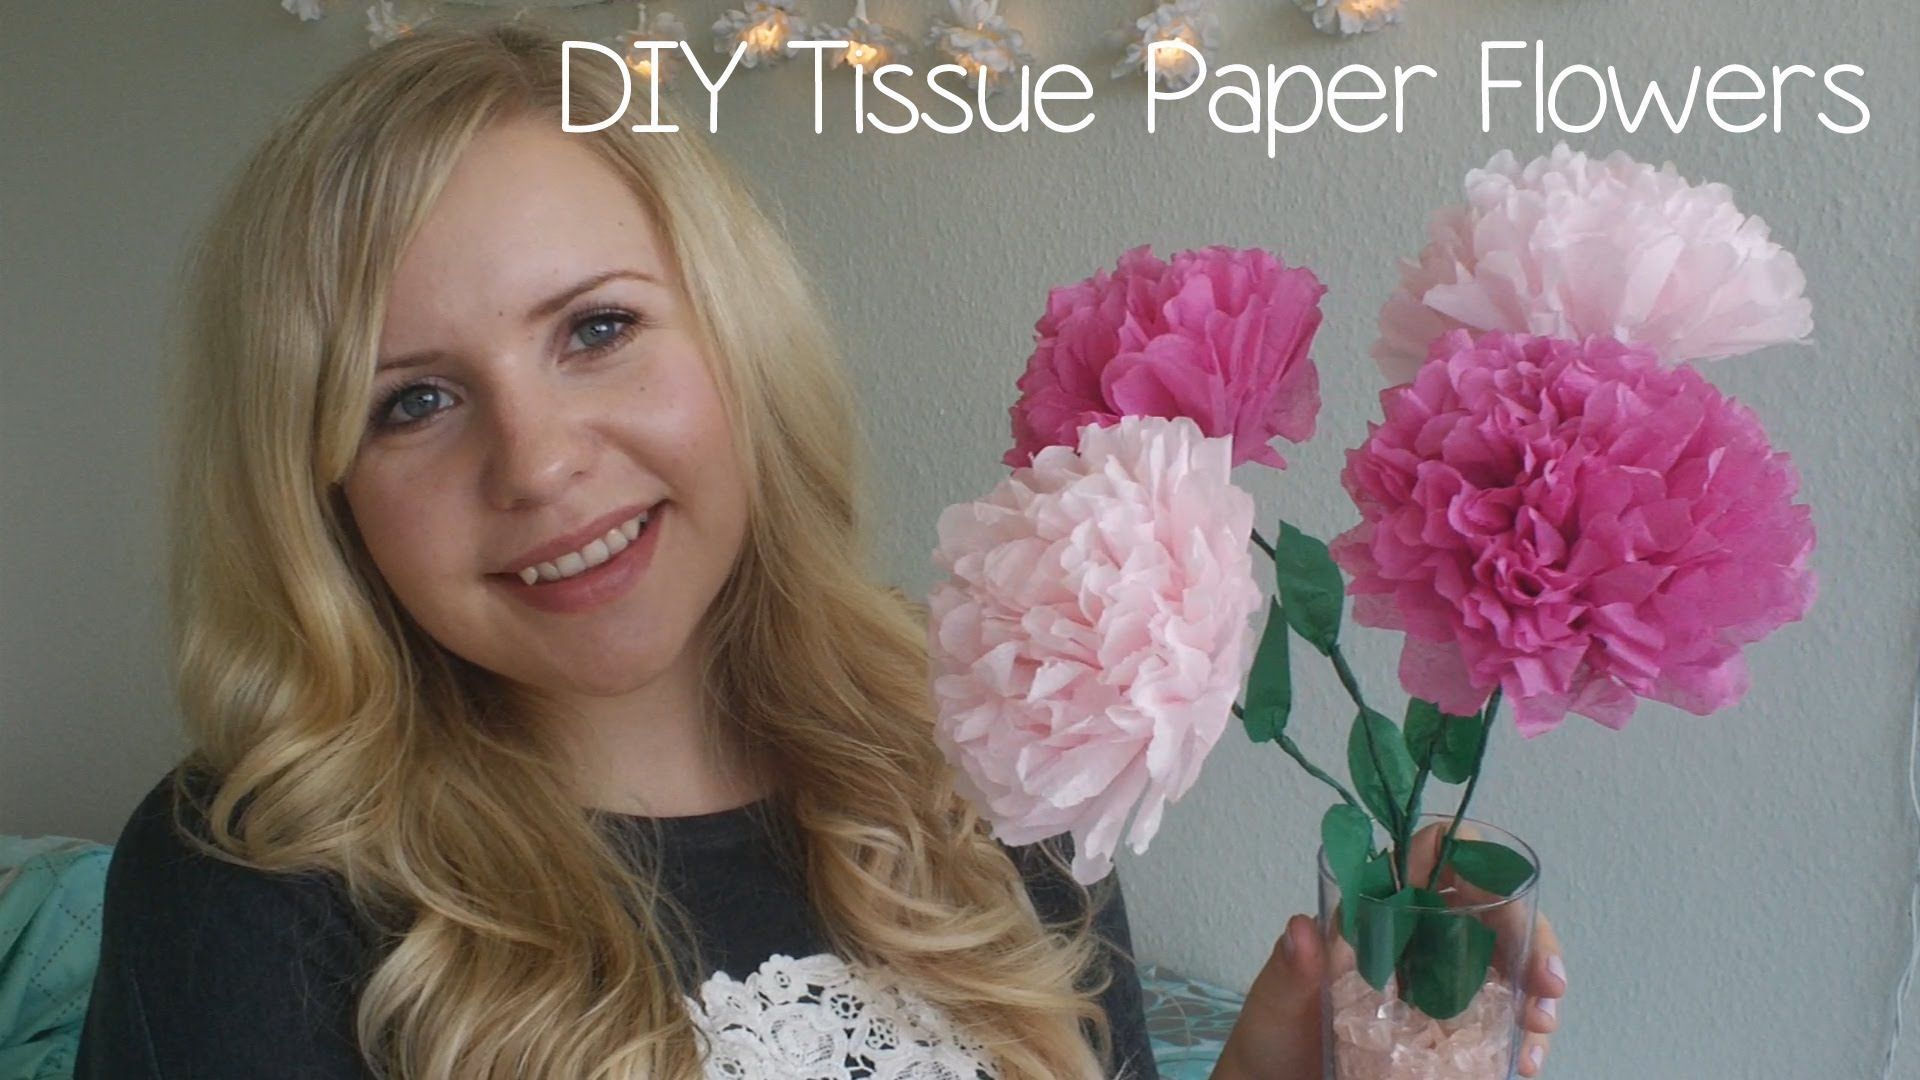 Pretty Little Diy Tissue Paper Flower Great For Decorating In